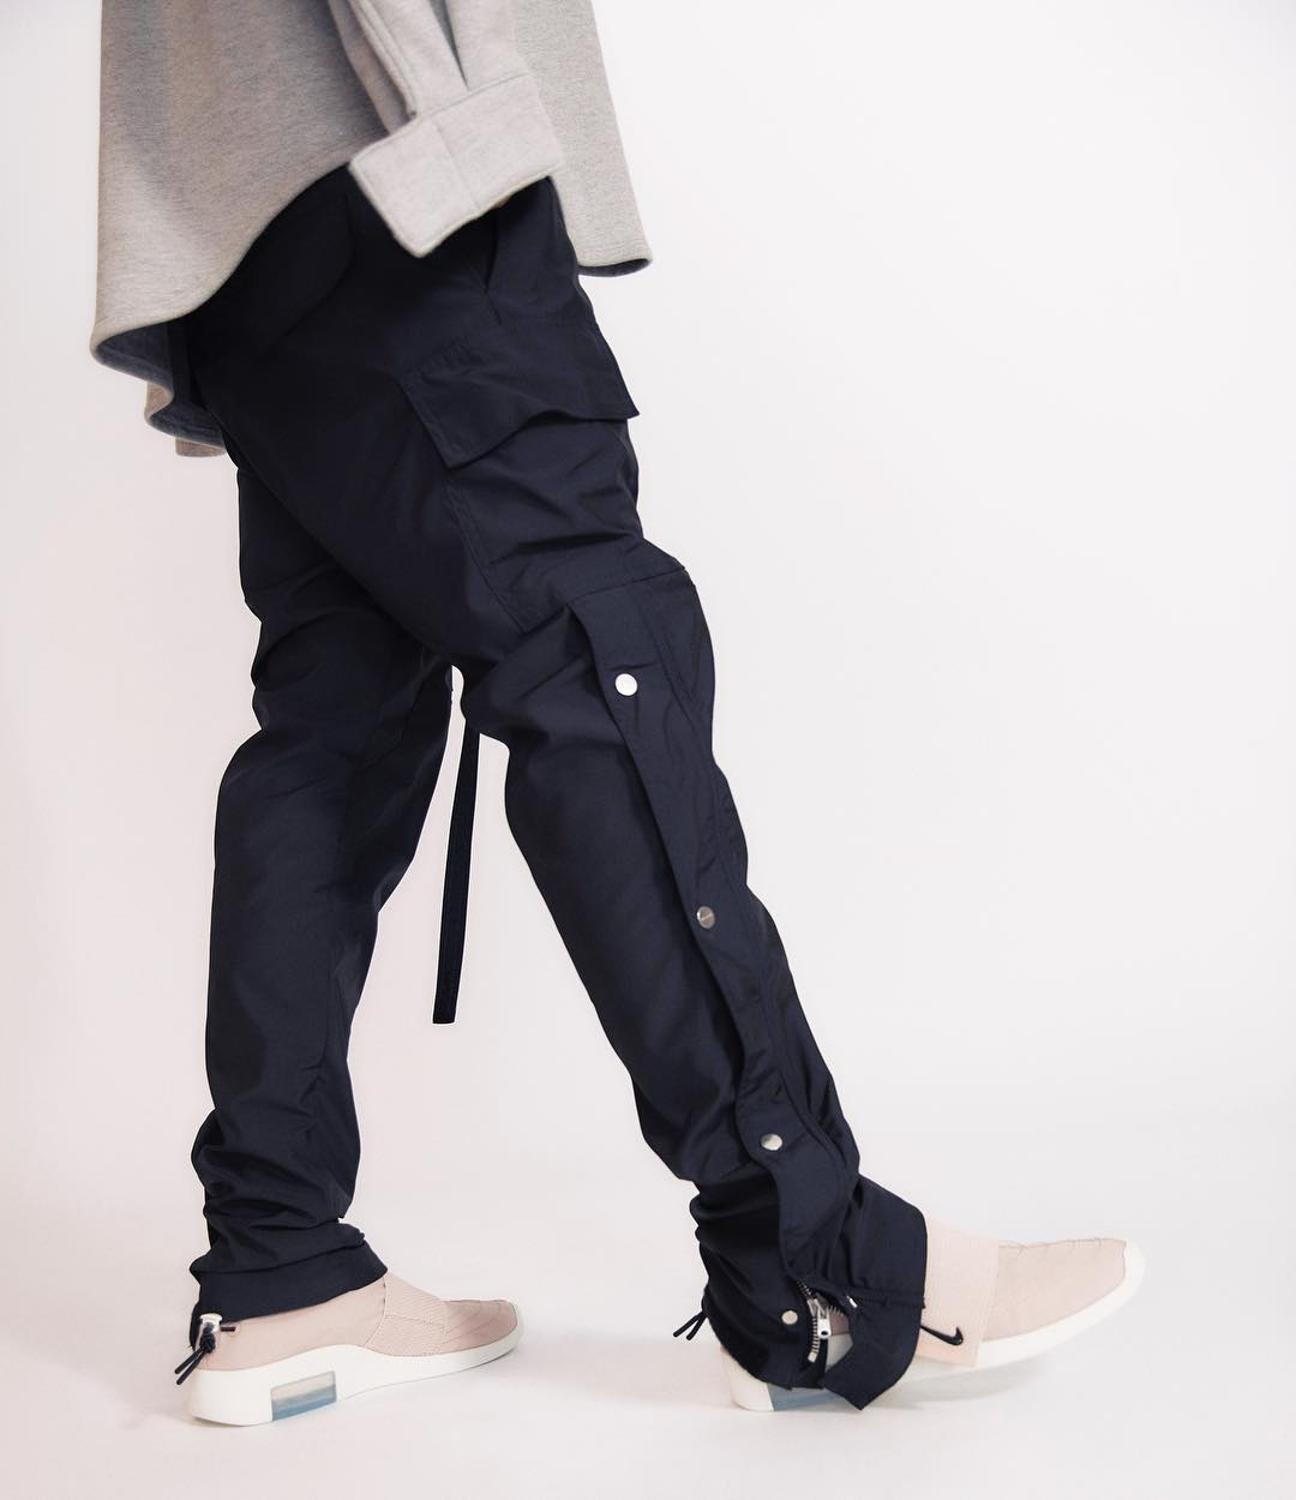 QoolXCWear 2019 Men Pants Side Snap Cargo Pants Hip Hop Slim Fit Ribboned Waistband Track Pants Black/Coffee Pants